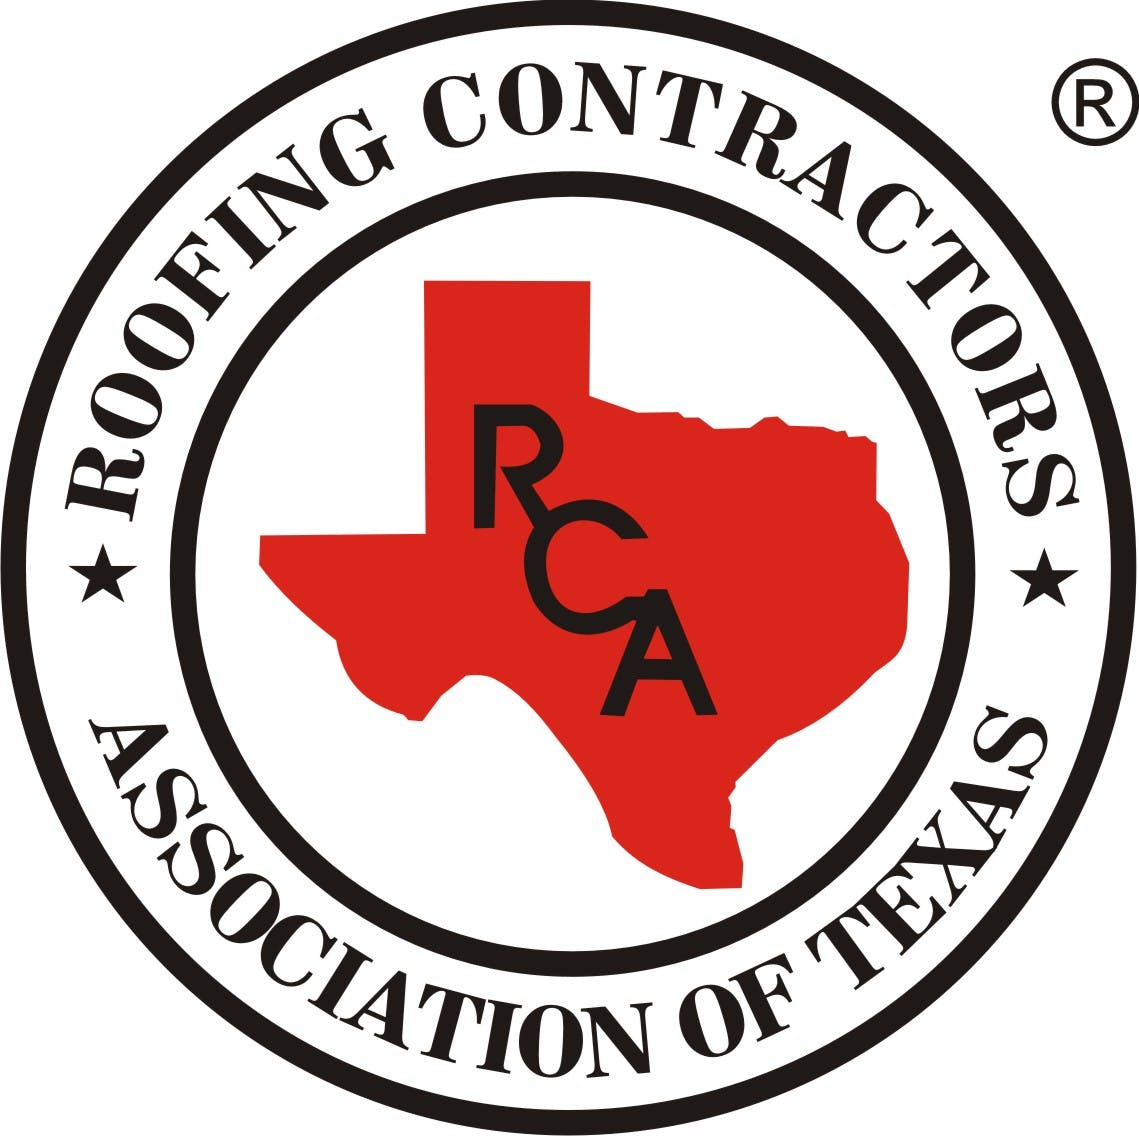 Docs Roofing Roofing Contractor Association of Texas